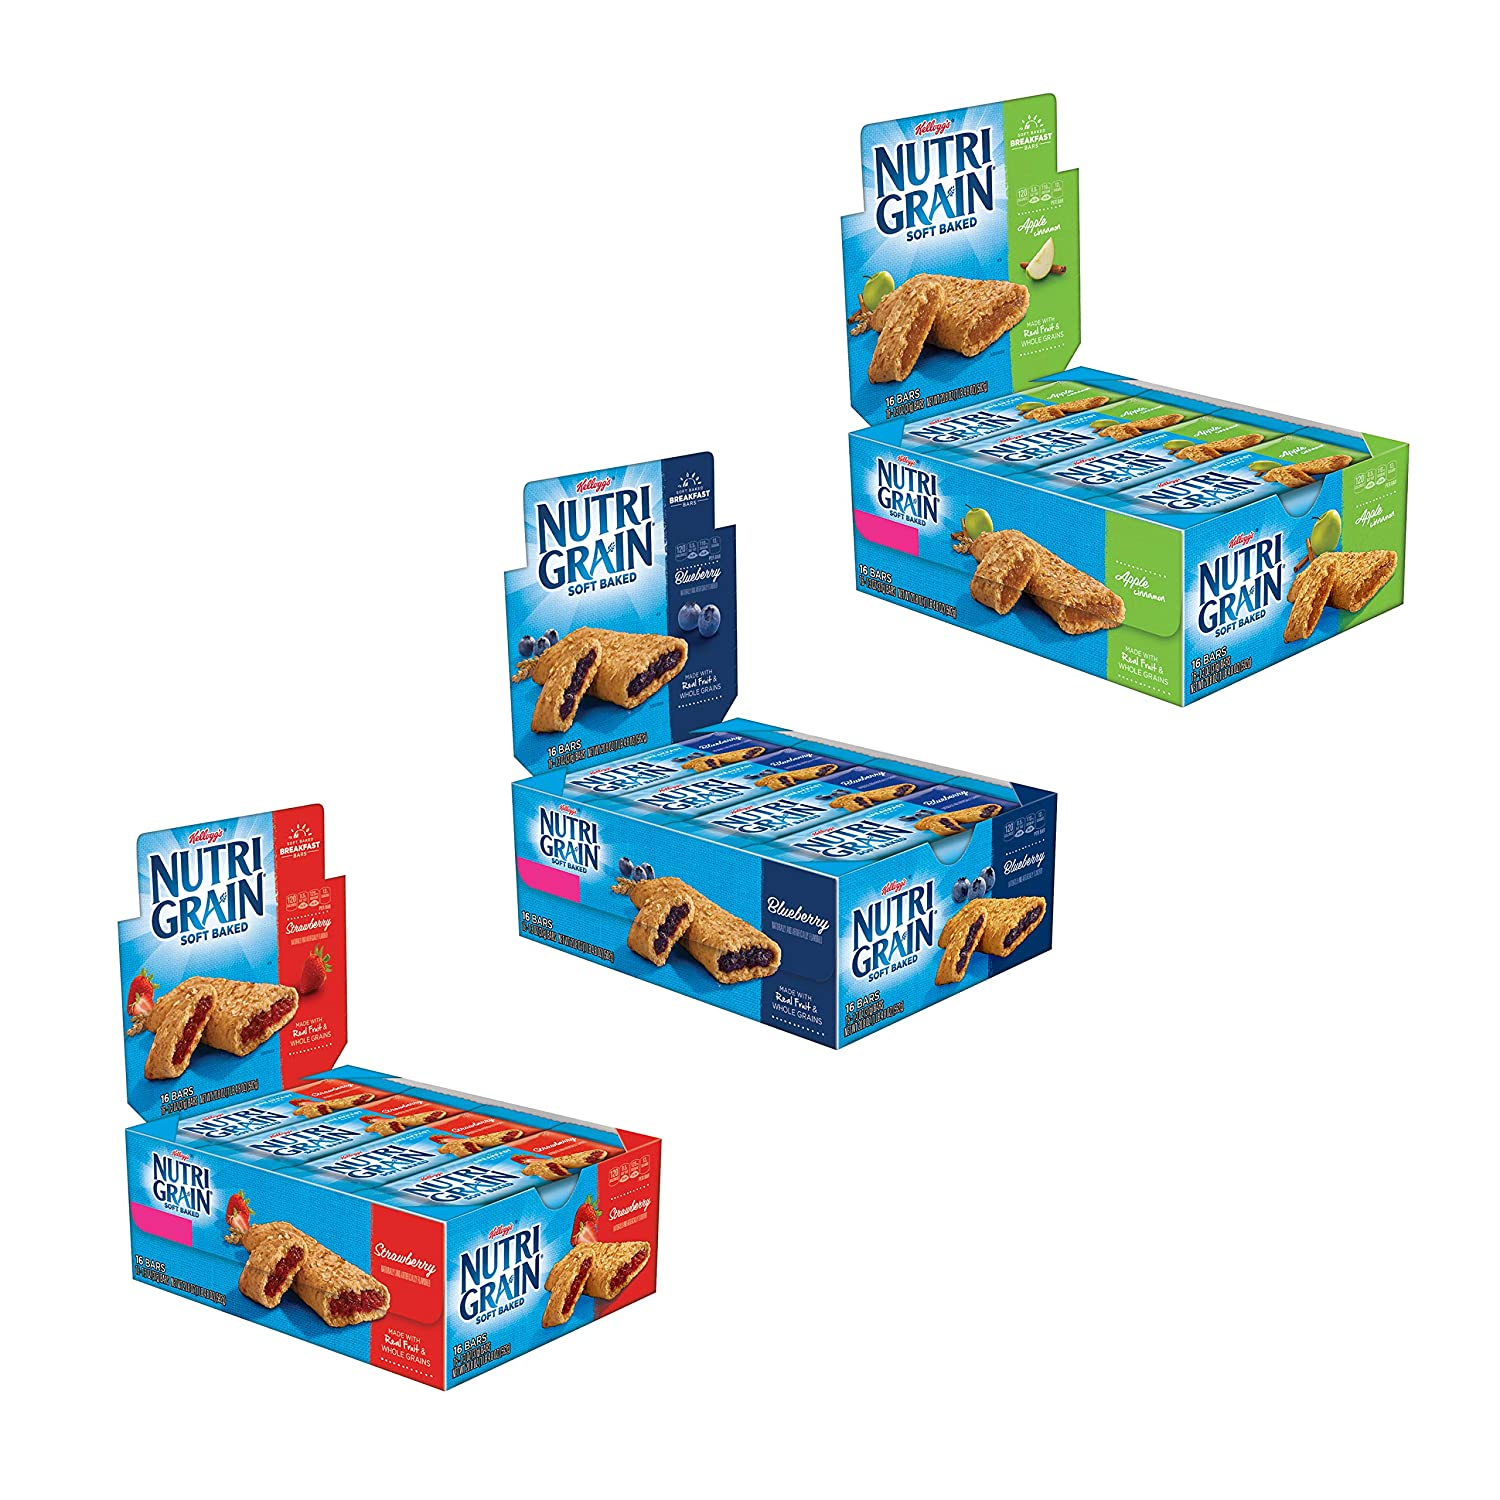 Kellogg's Nutri-Grain Variety Pack Soft Baked Breakfast Bars - Grab-N-Go Snacks, Apple Cinnamon, Blueberry, and Strawberry (48 Count)